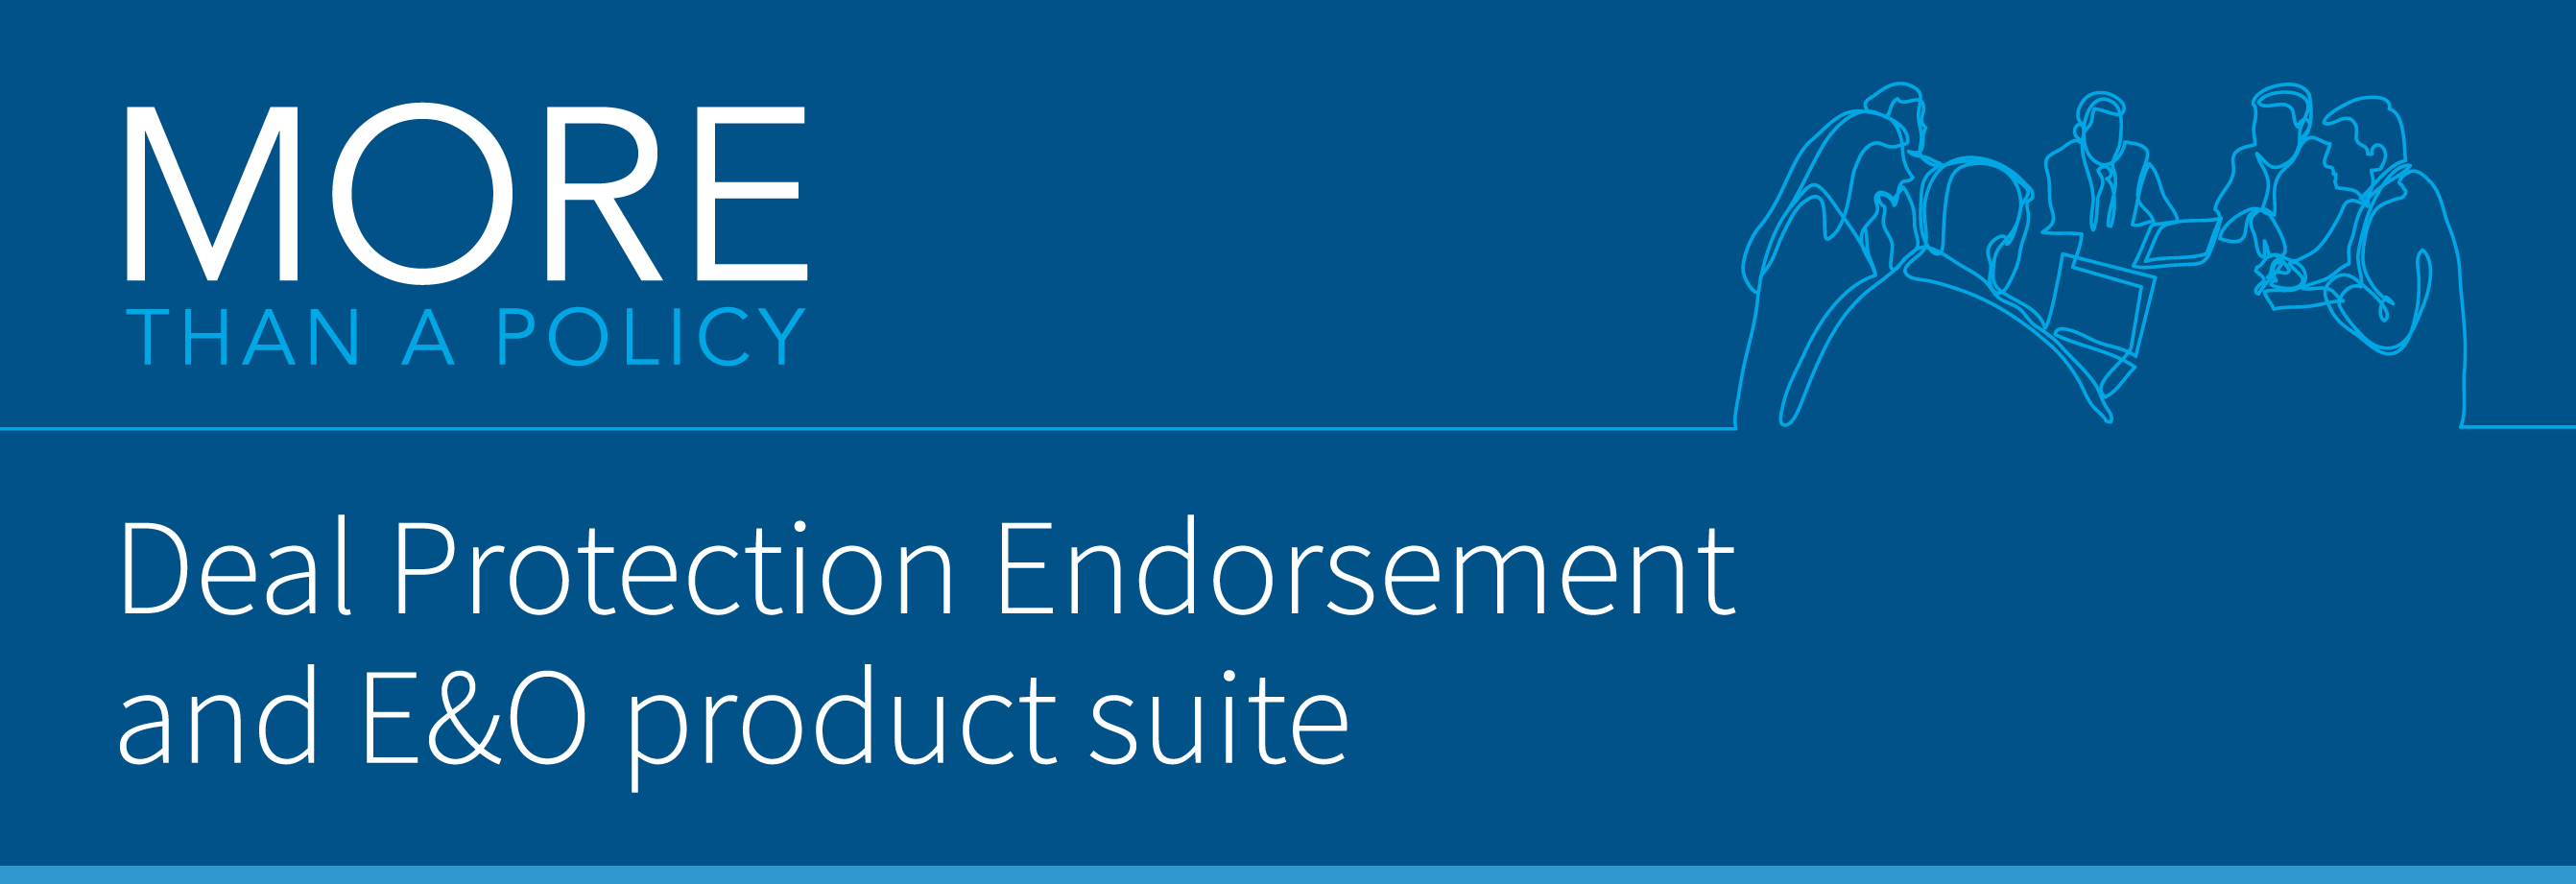 More than a policy, Deal Protection Endorsement and E&O product suite